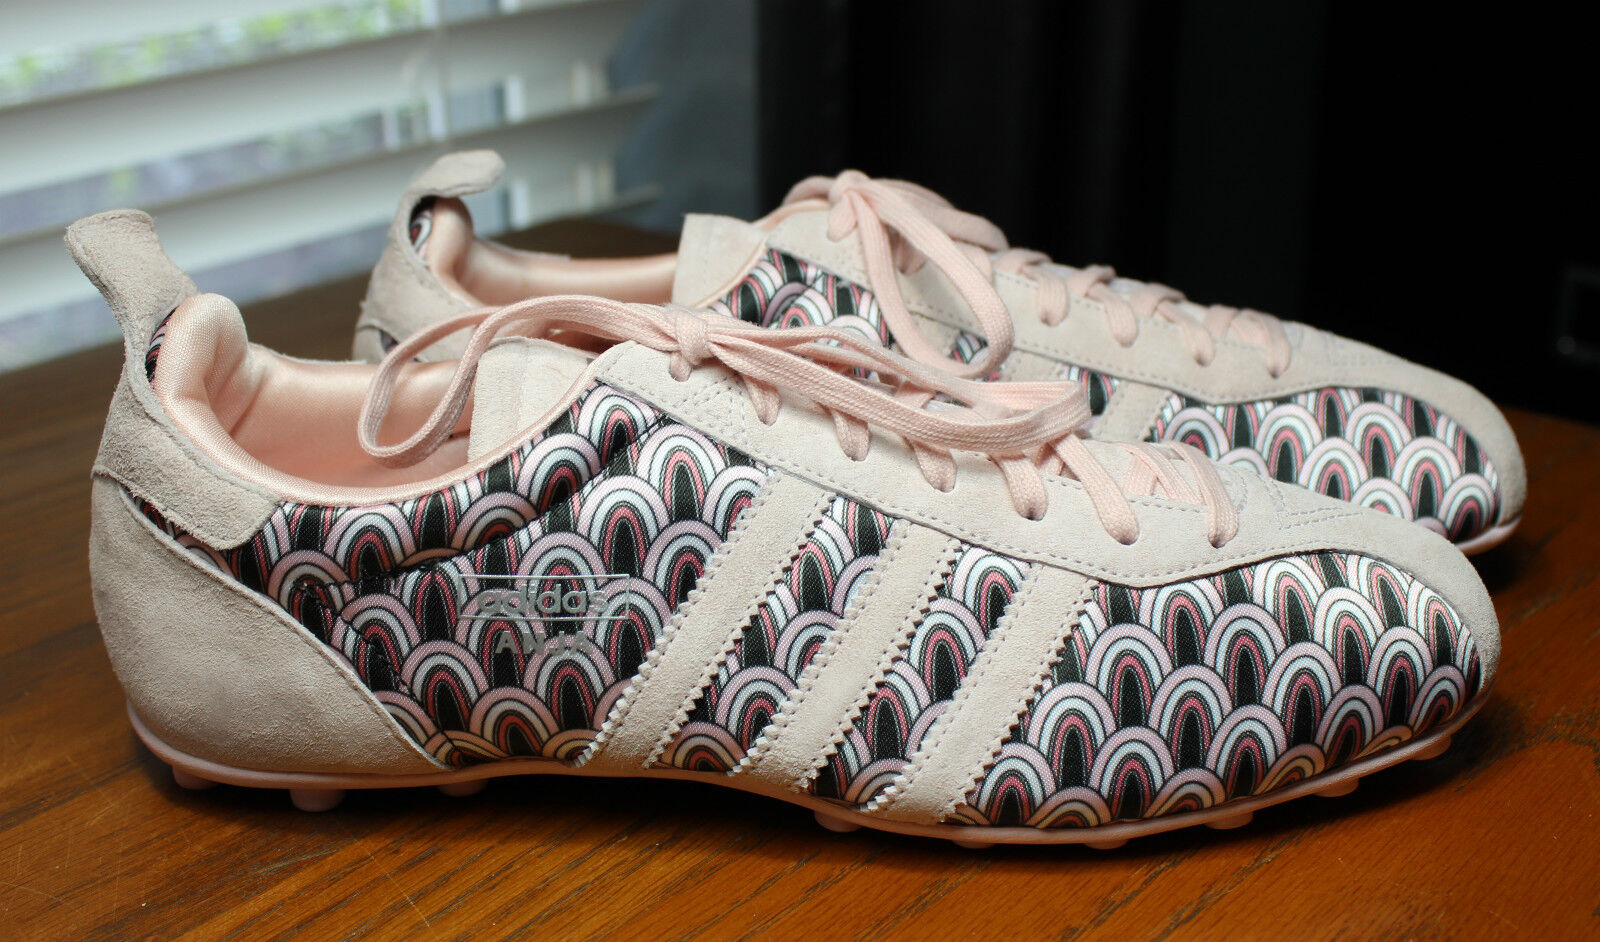 RETRO 2018 ADIDAS ANJA SOFT PINK SUEDE & PRINT CLEATS WOMENS SIZE 8 US WORN ONCE